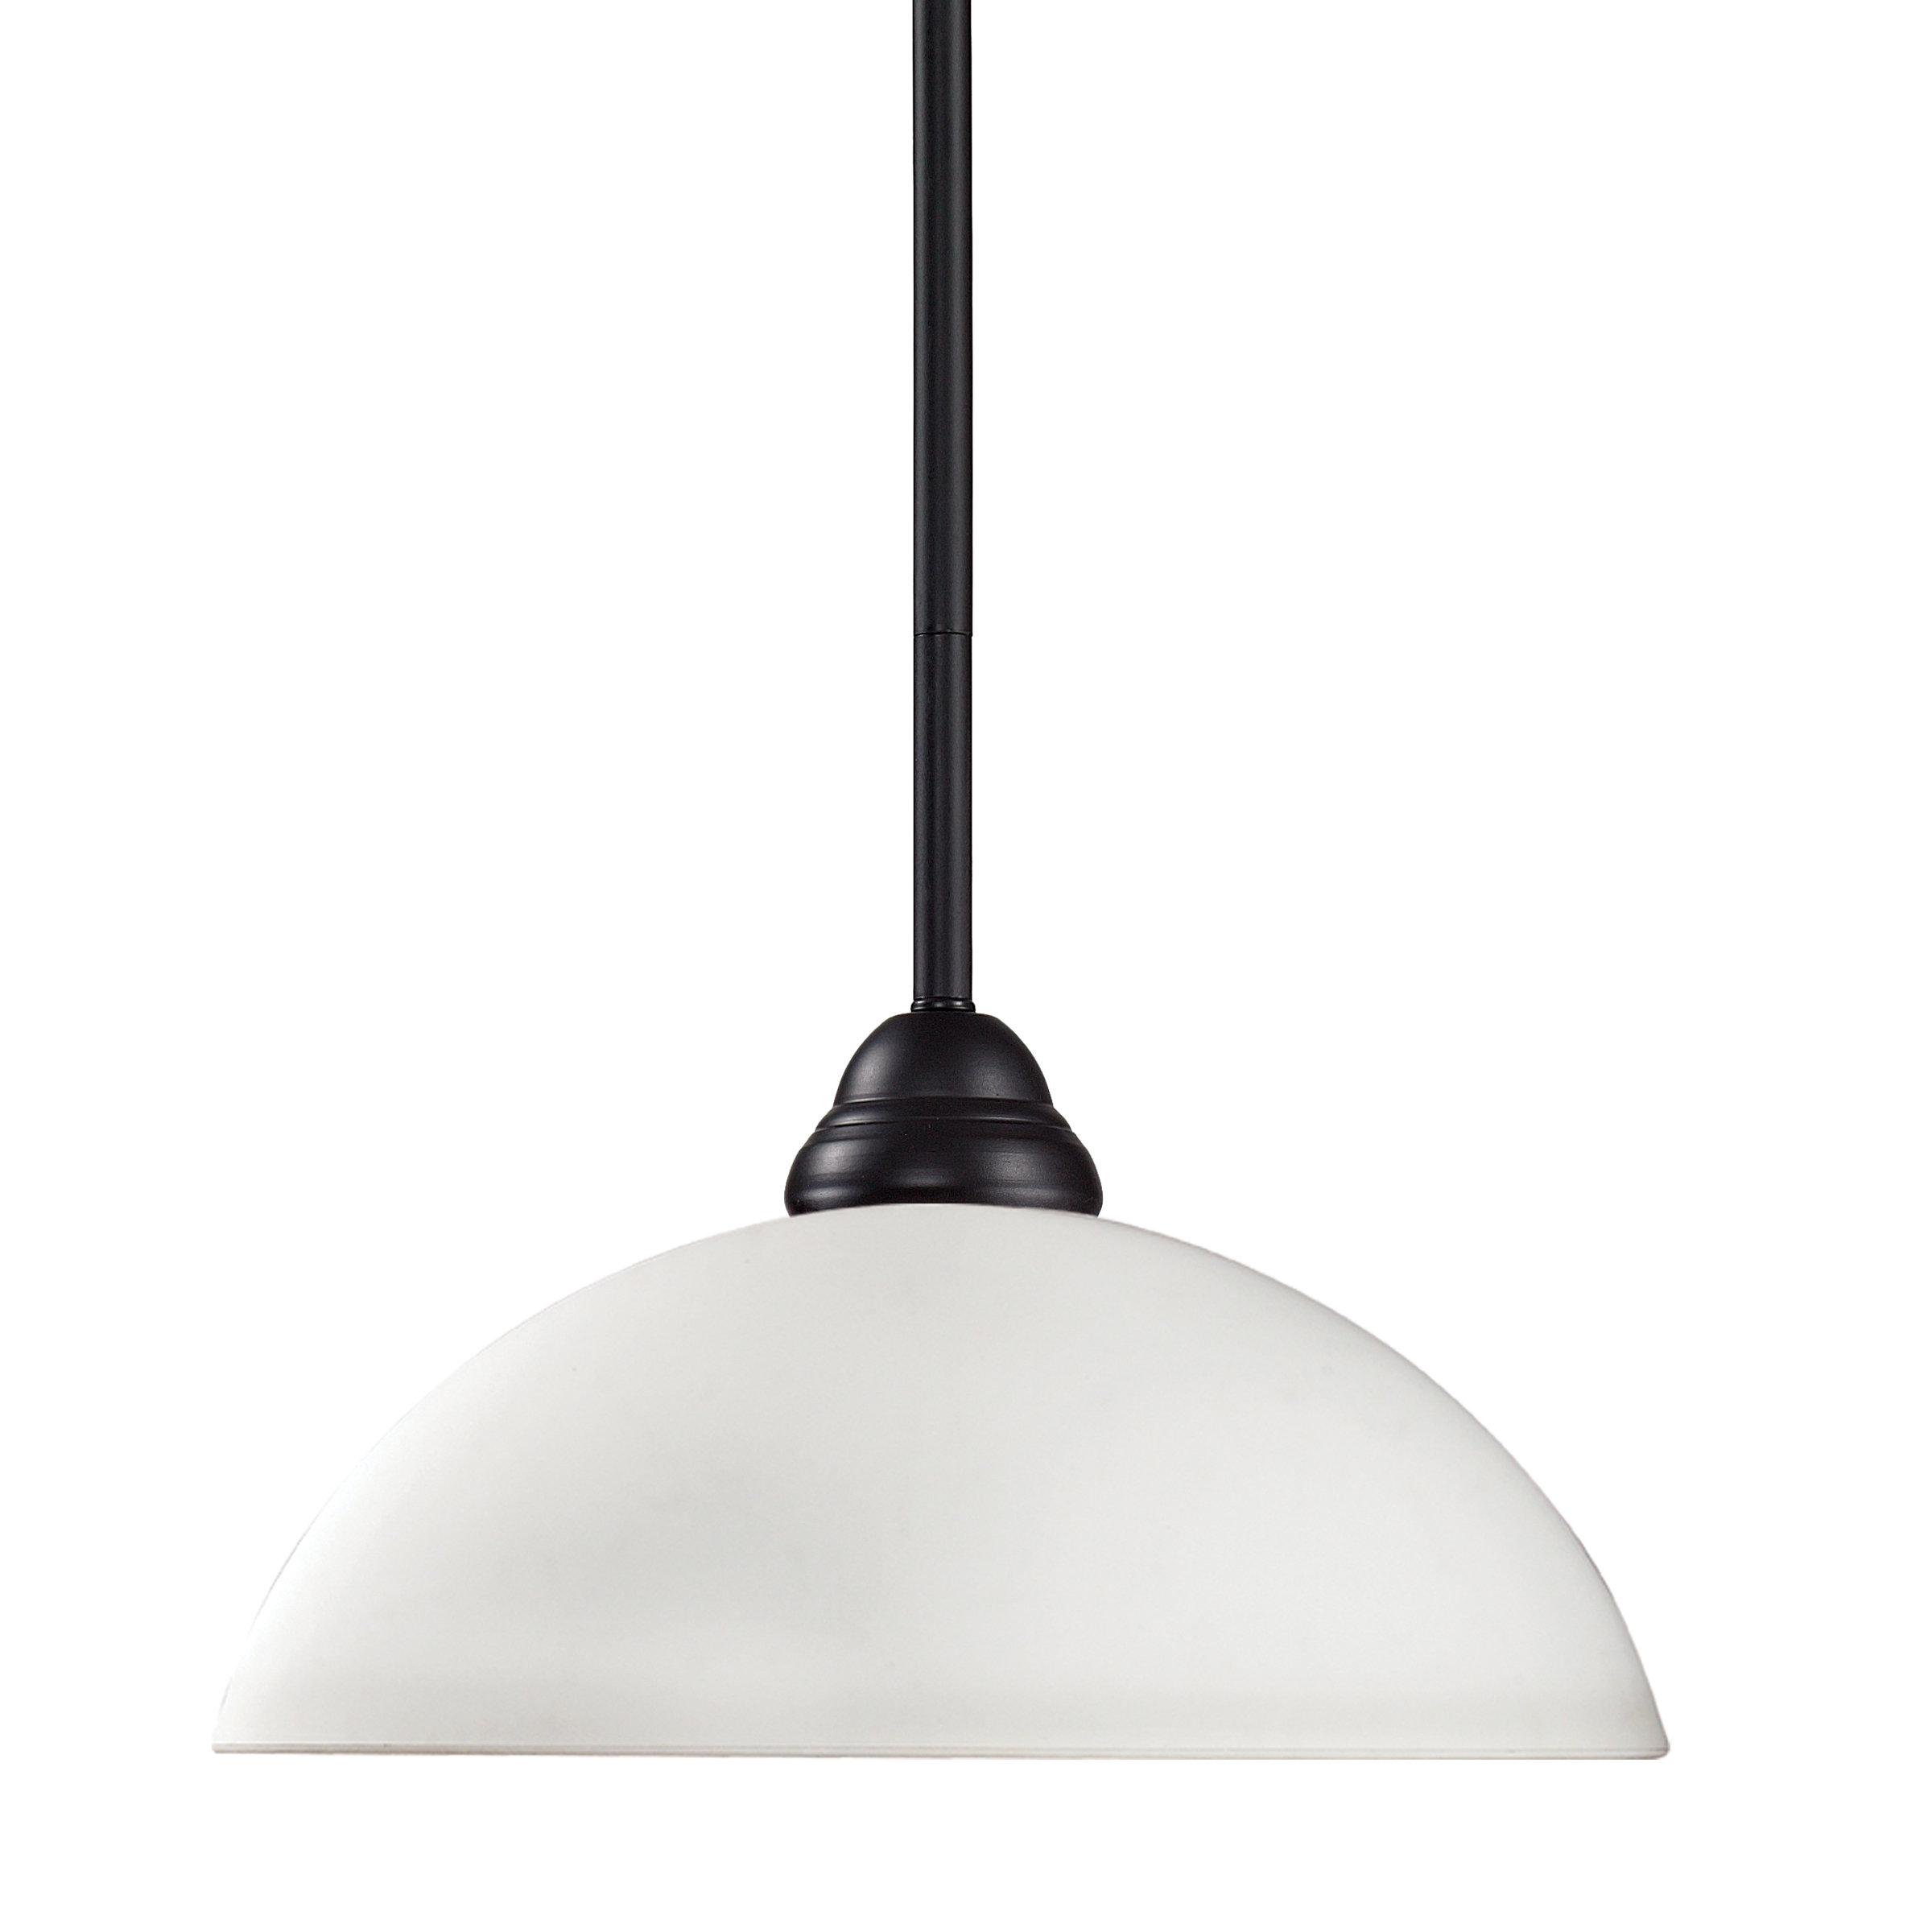 Brynlee 1 Light Single Dome Pendant With Favorite Southlake 1 Light Single Dome Pendants (View 3 of 25)